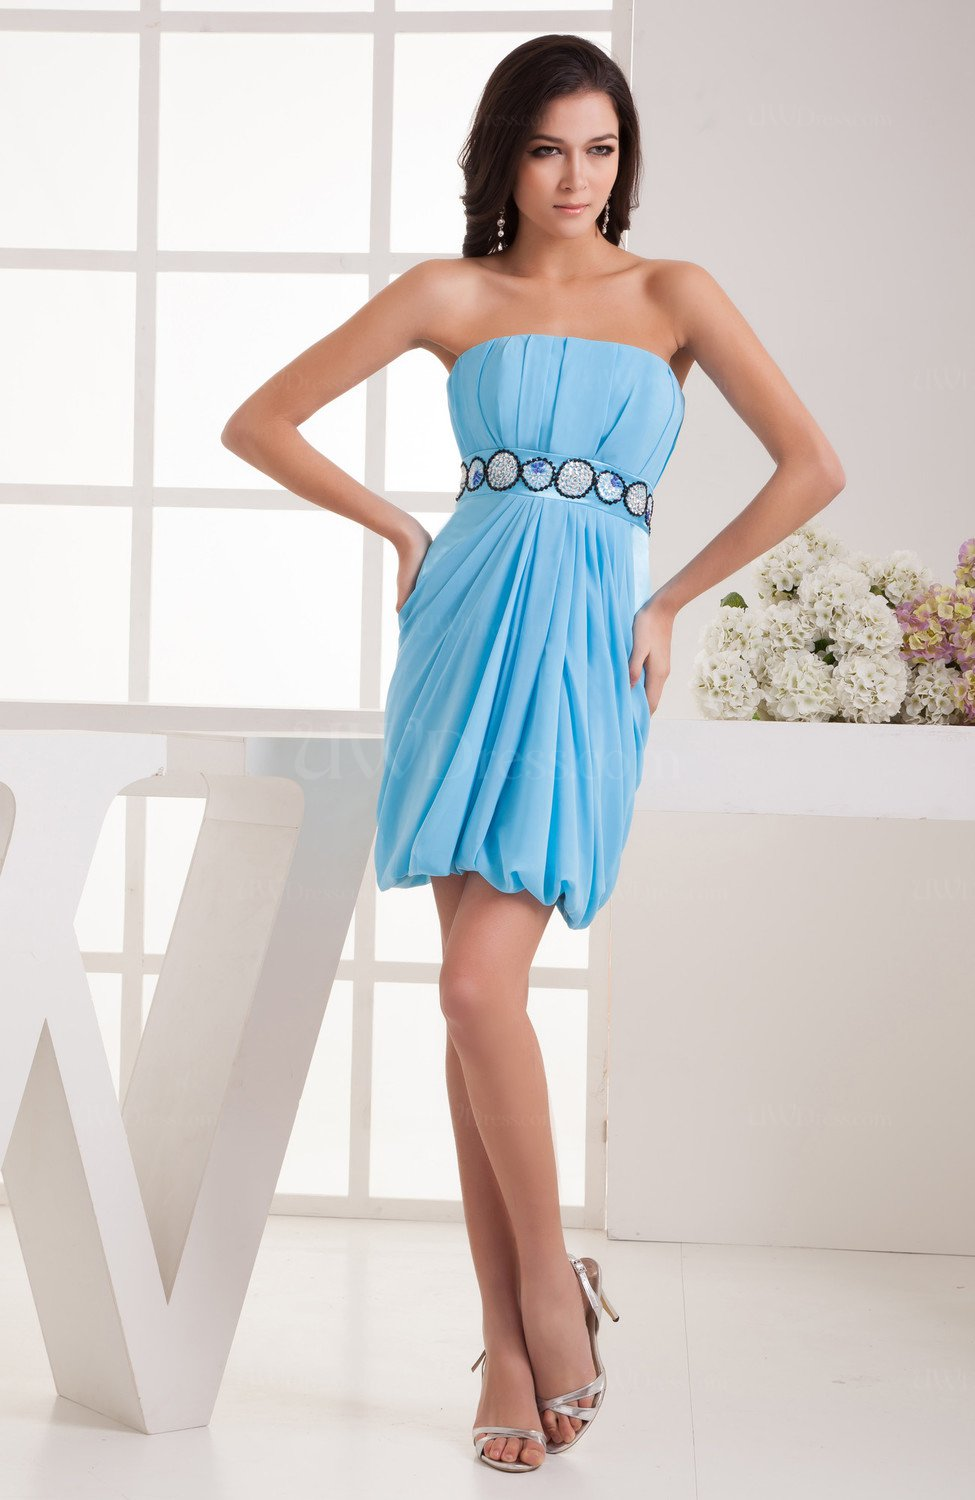 Chiffon Bridesmaid Dress Inexpensive Trendy Chic Mini